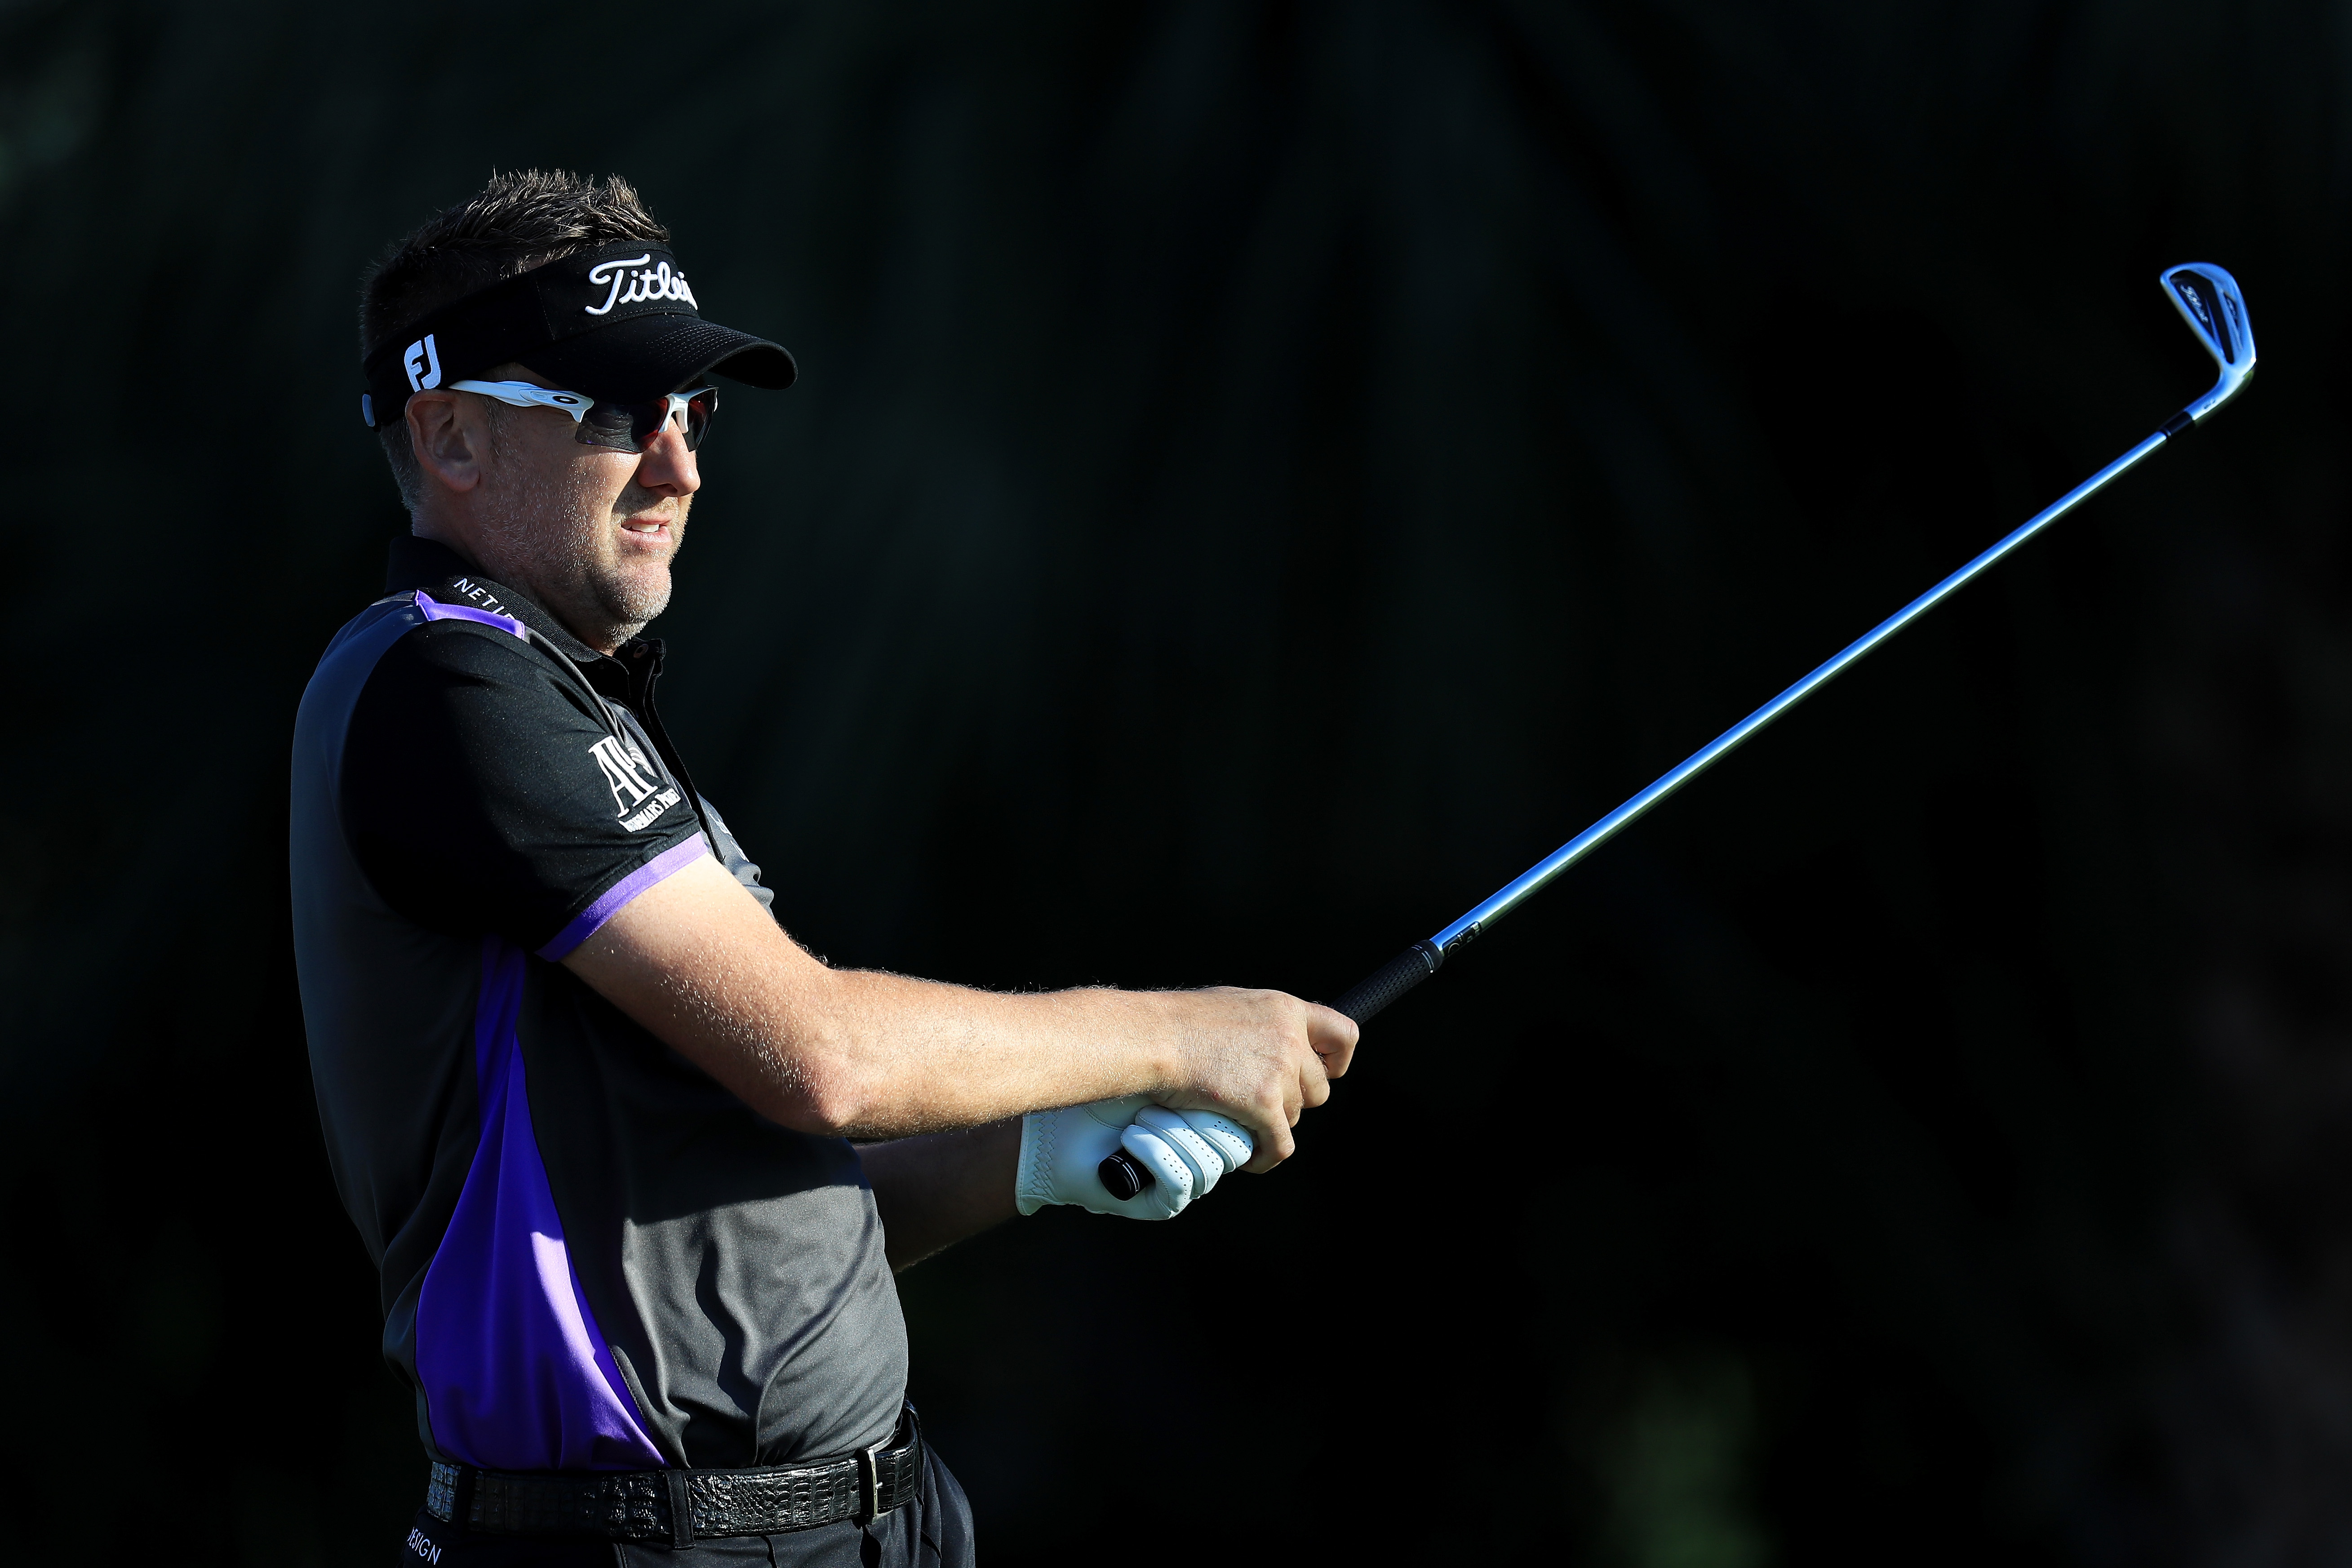 Ian Poulter hasn't won a professional event since 2012.